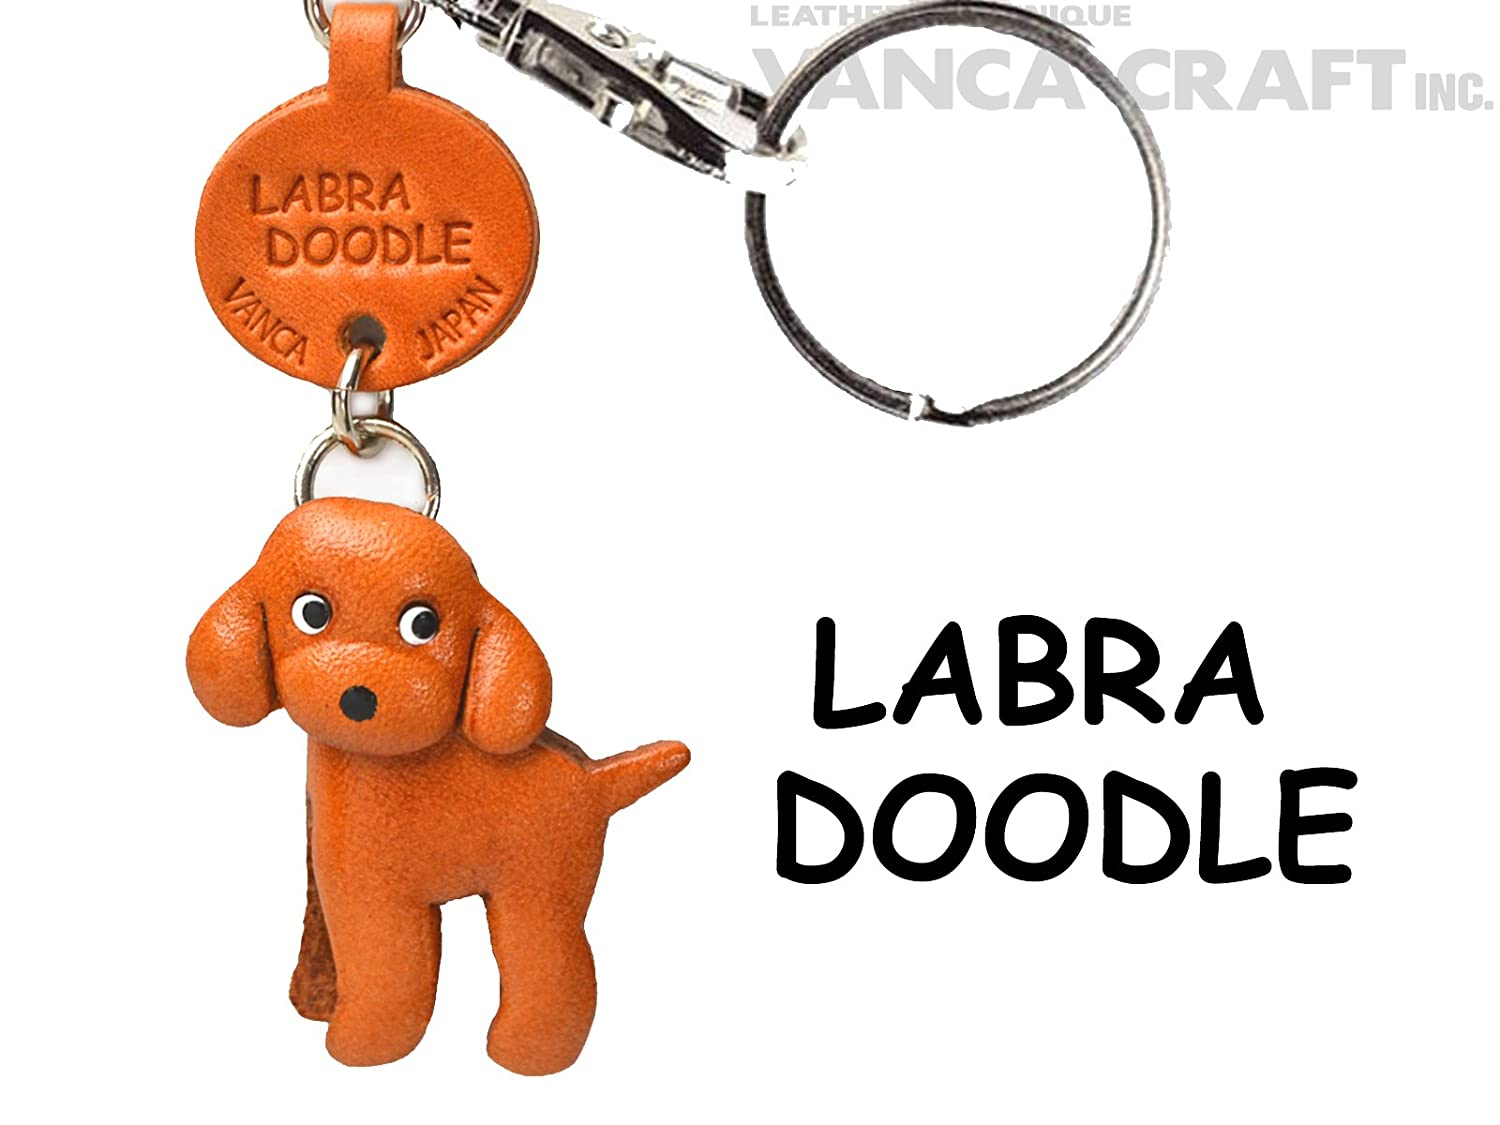 Lion Leather Animal Small Keychains VANCA CRAFT-Collectible Keyring Charm Pendant Made in Japan ...